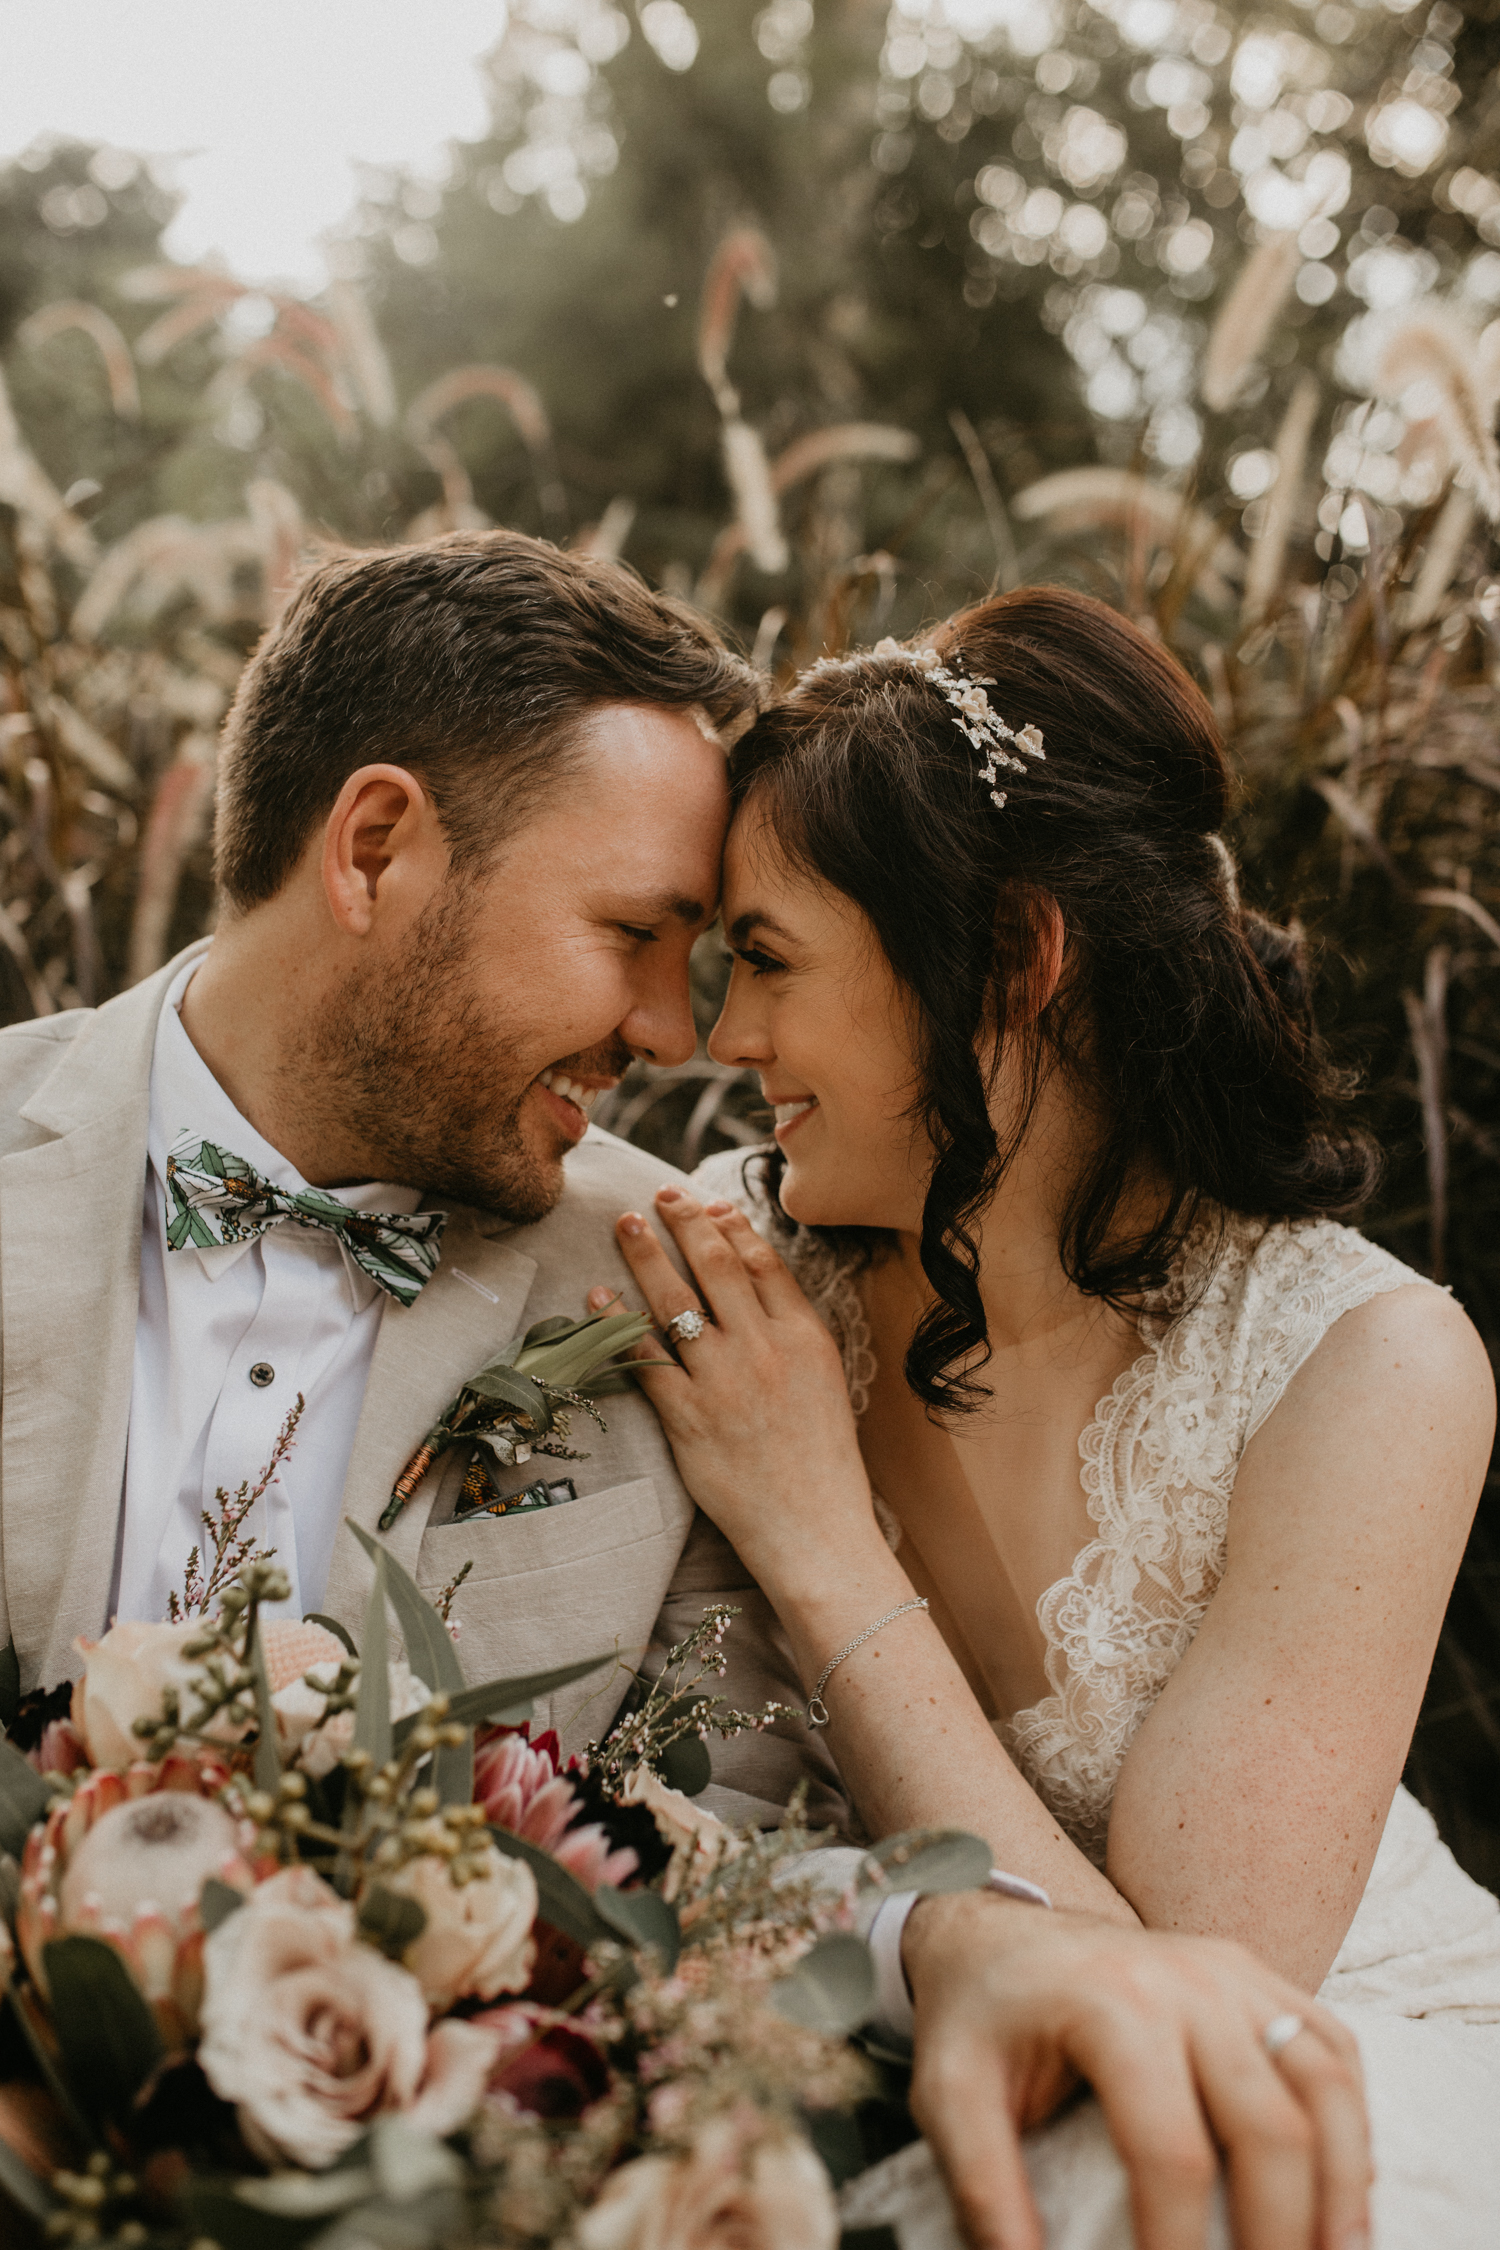 Sydney Romantic Authentic Natural Free Spirit Candid Wedding Photography-66.jpg